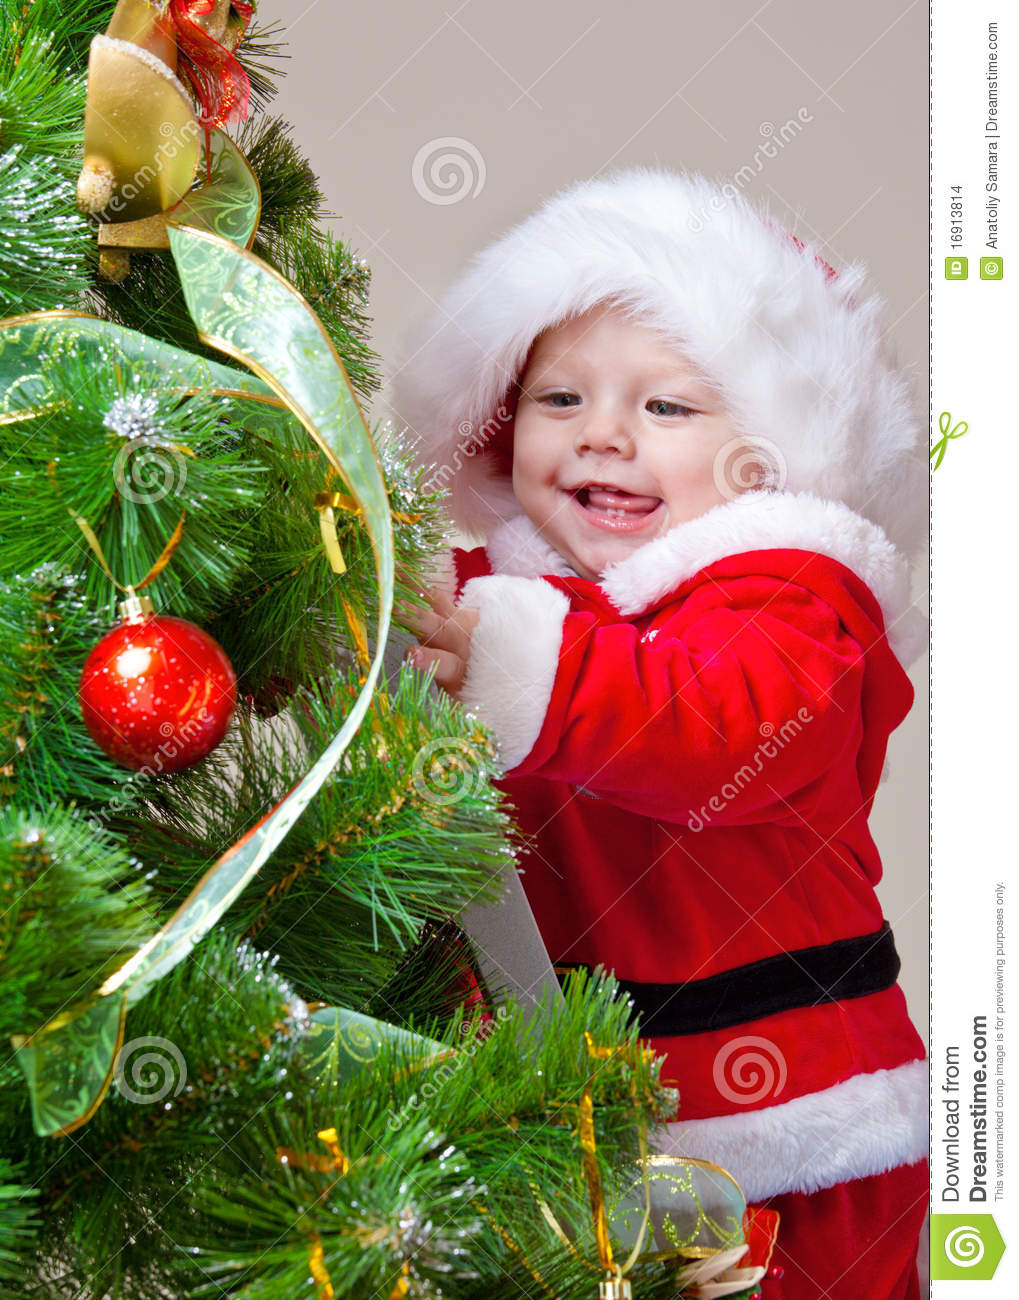 Baby decorating christmas tree stock images image 16913814 for Baby christmas tree decoration